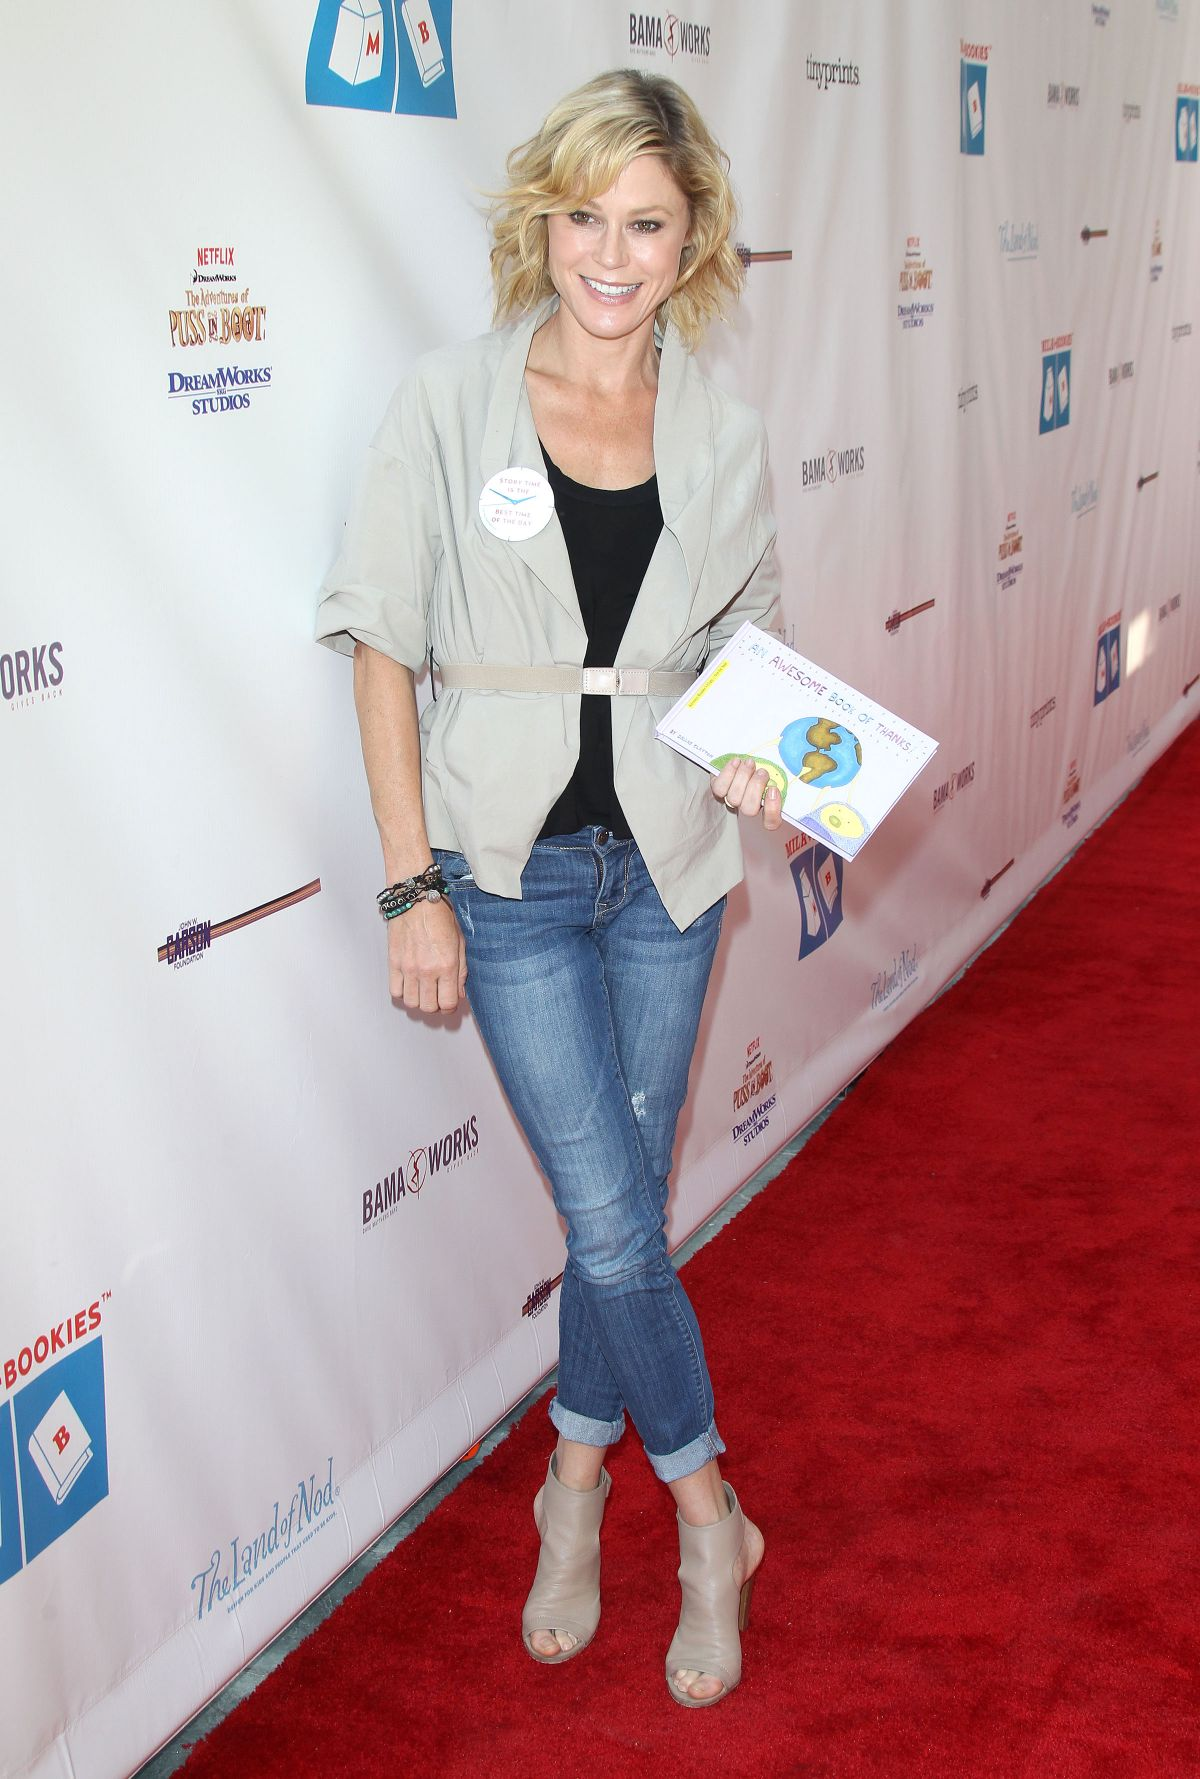 JULIE BOWEN at Milk + Bookies 2015 Story Time Celebration in Los Angeles